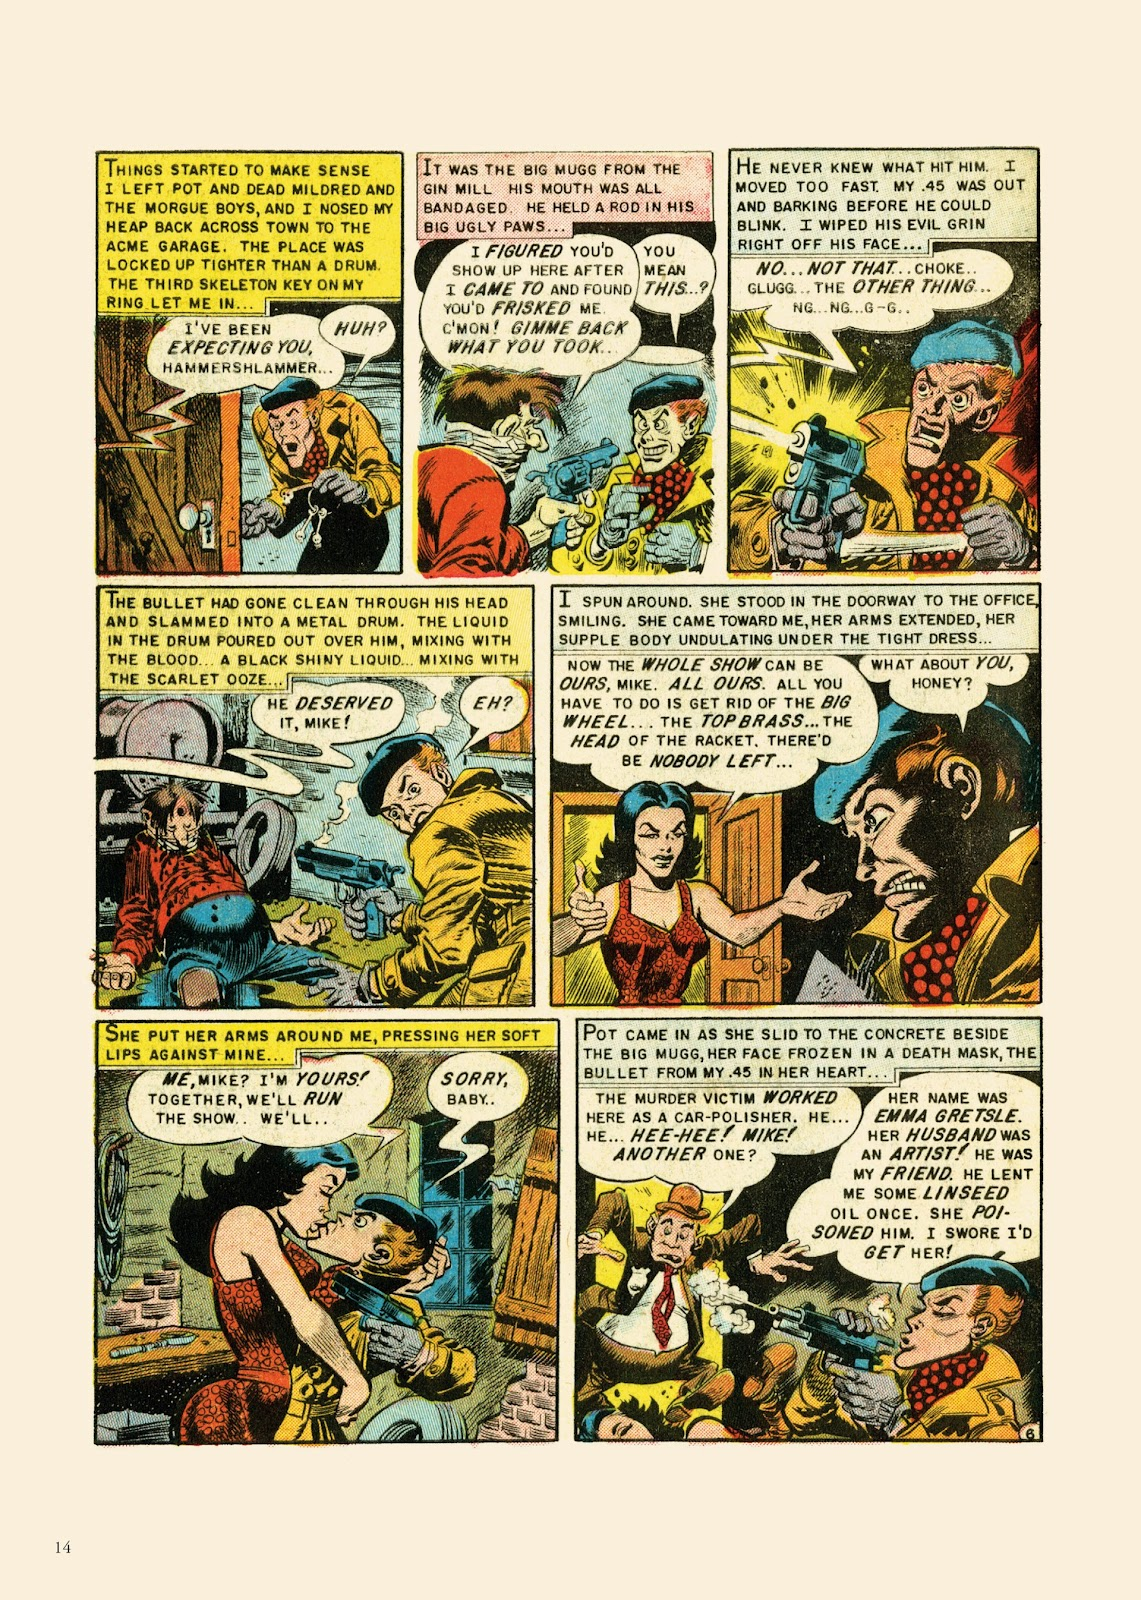 Read online Sincerest Form of Parody: The Best 1950s MAD-Inspired Satirical Comics comic -  Issue # TPB (Part 1) - 15